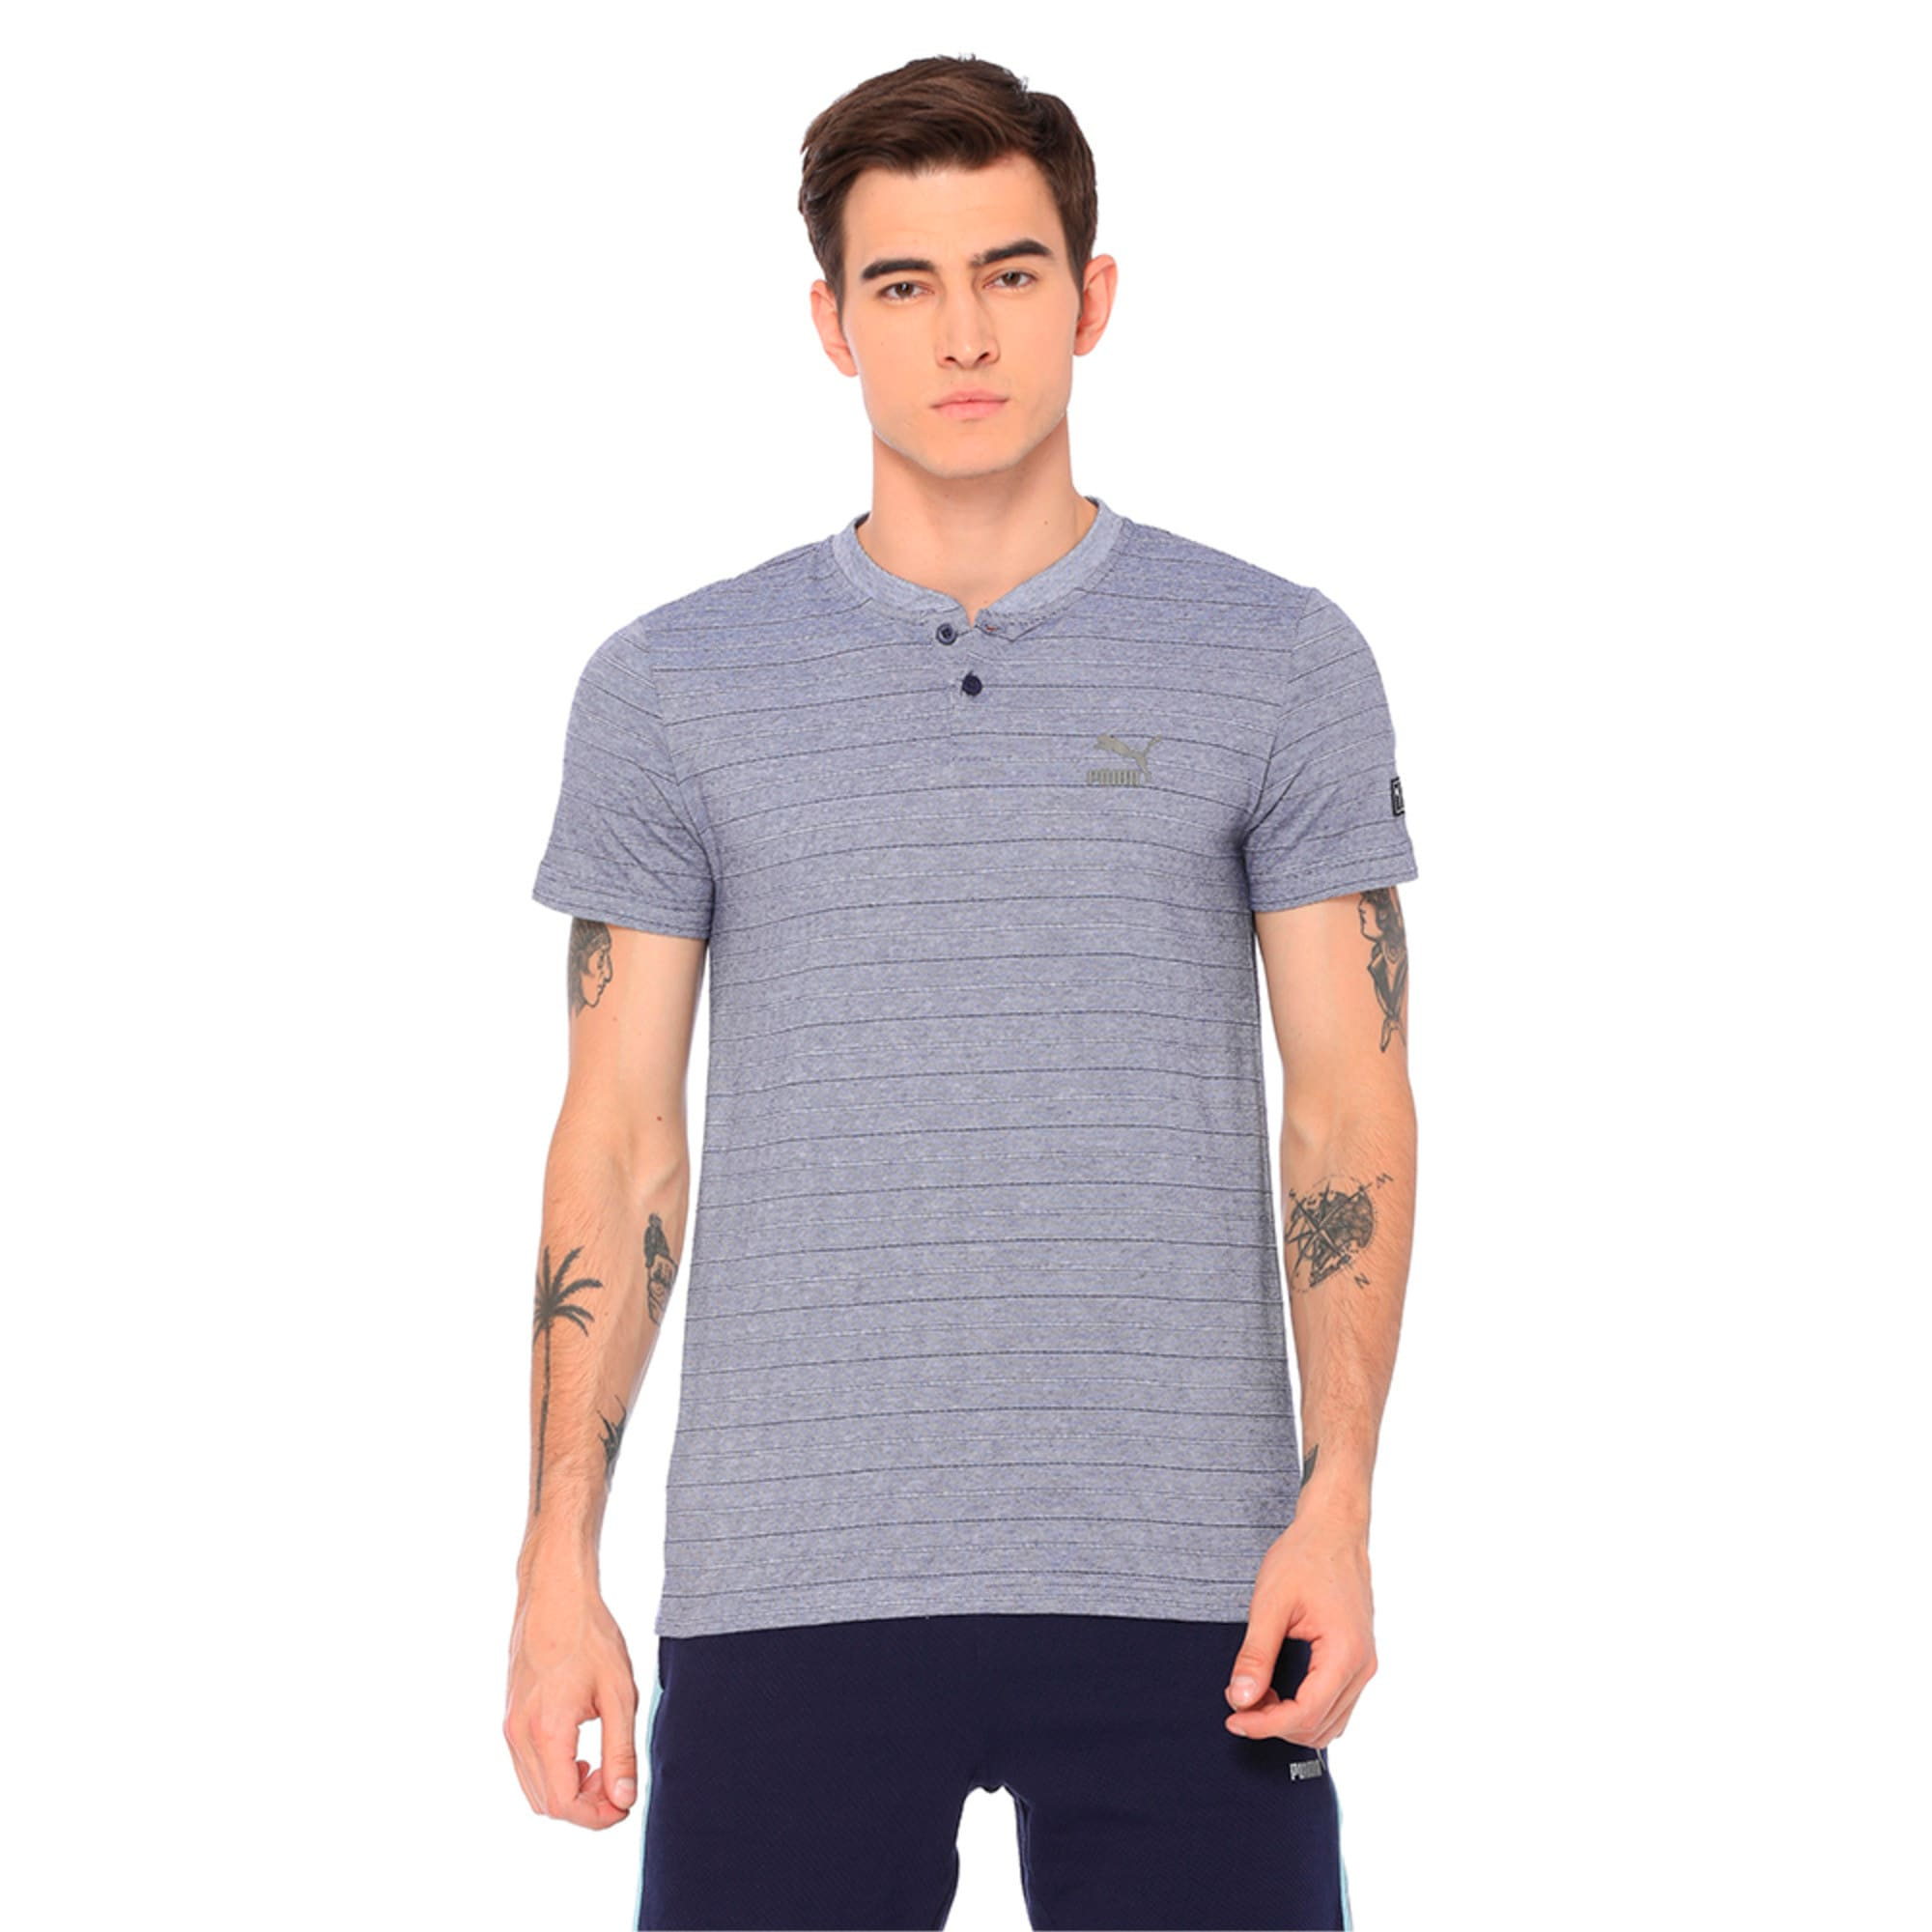 VK Henley Tee, Peacoat, large-IND